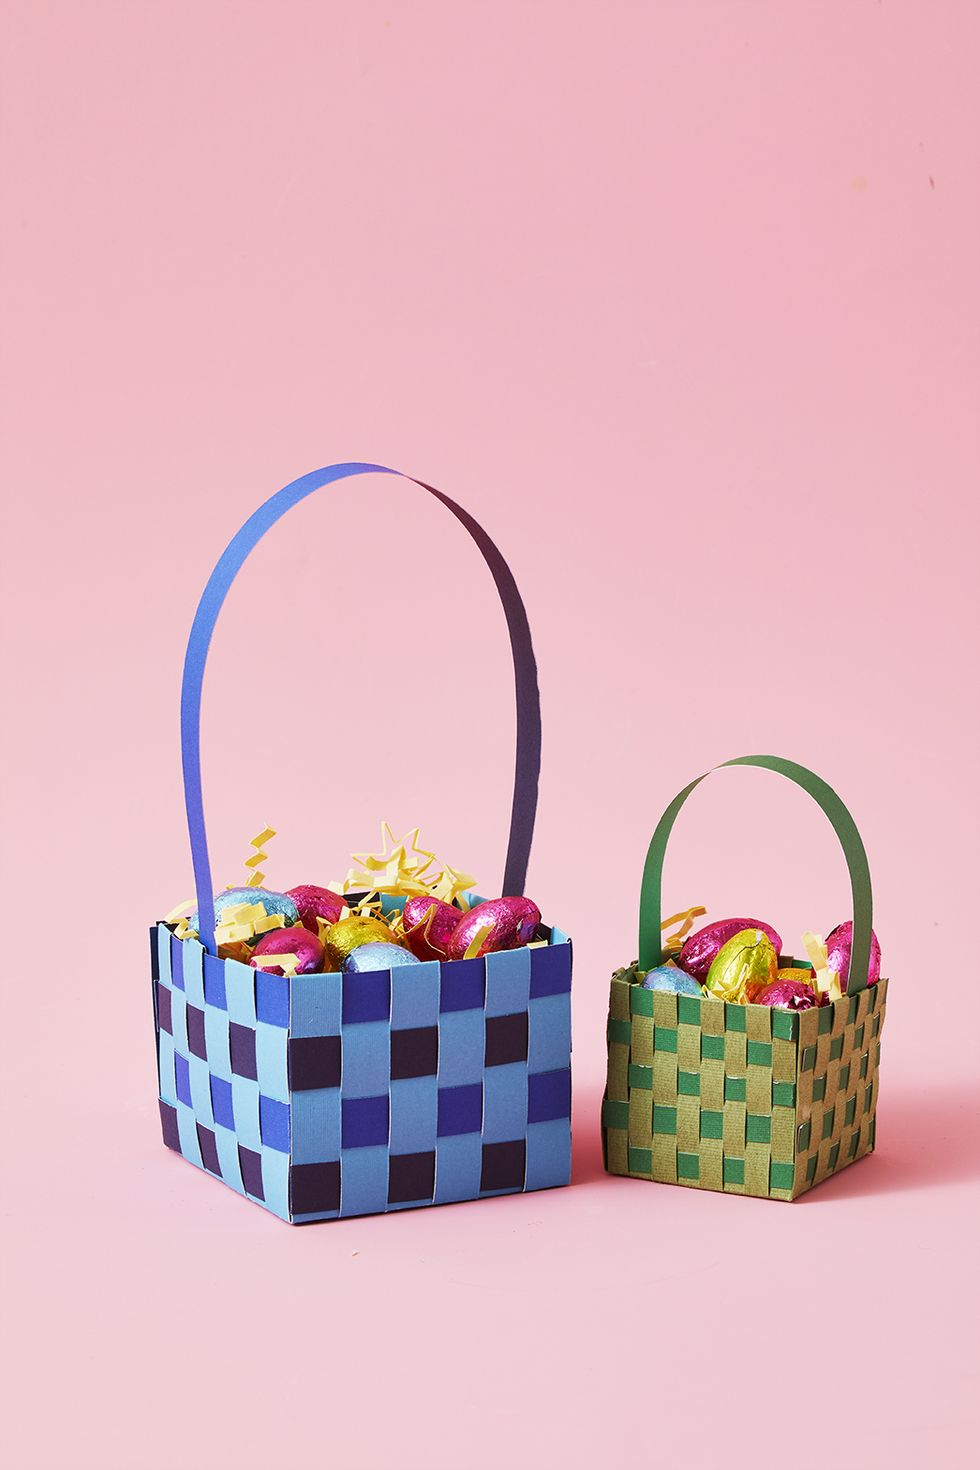 How to Make a DIY Paper Easter Basket